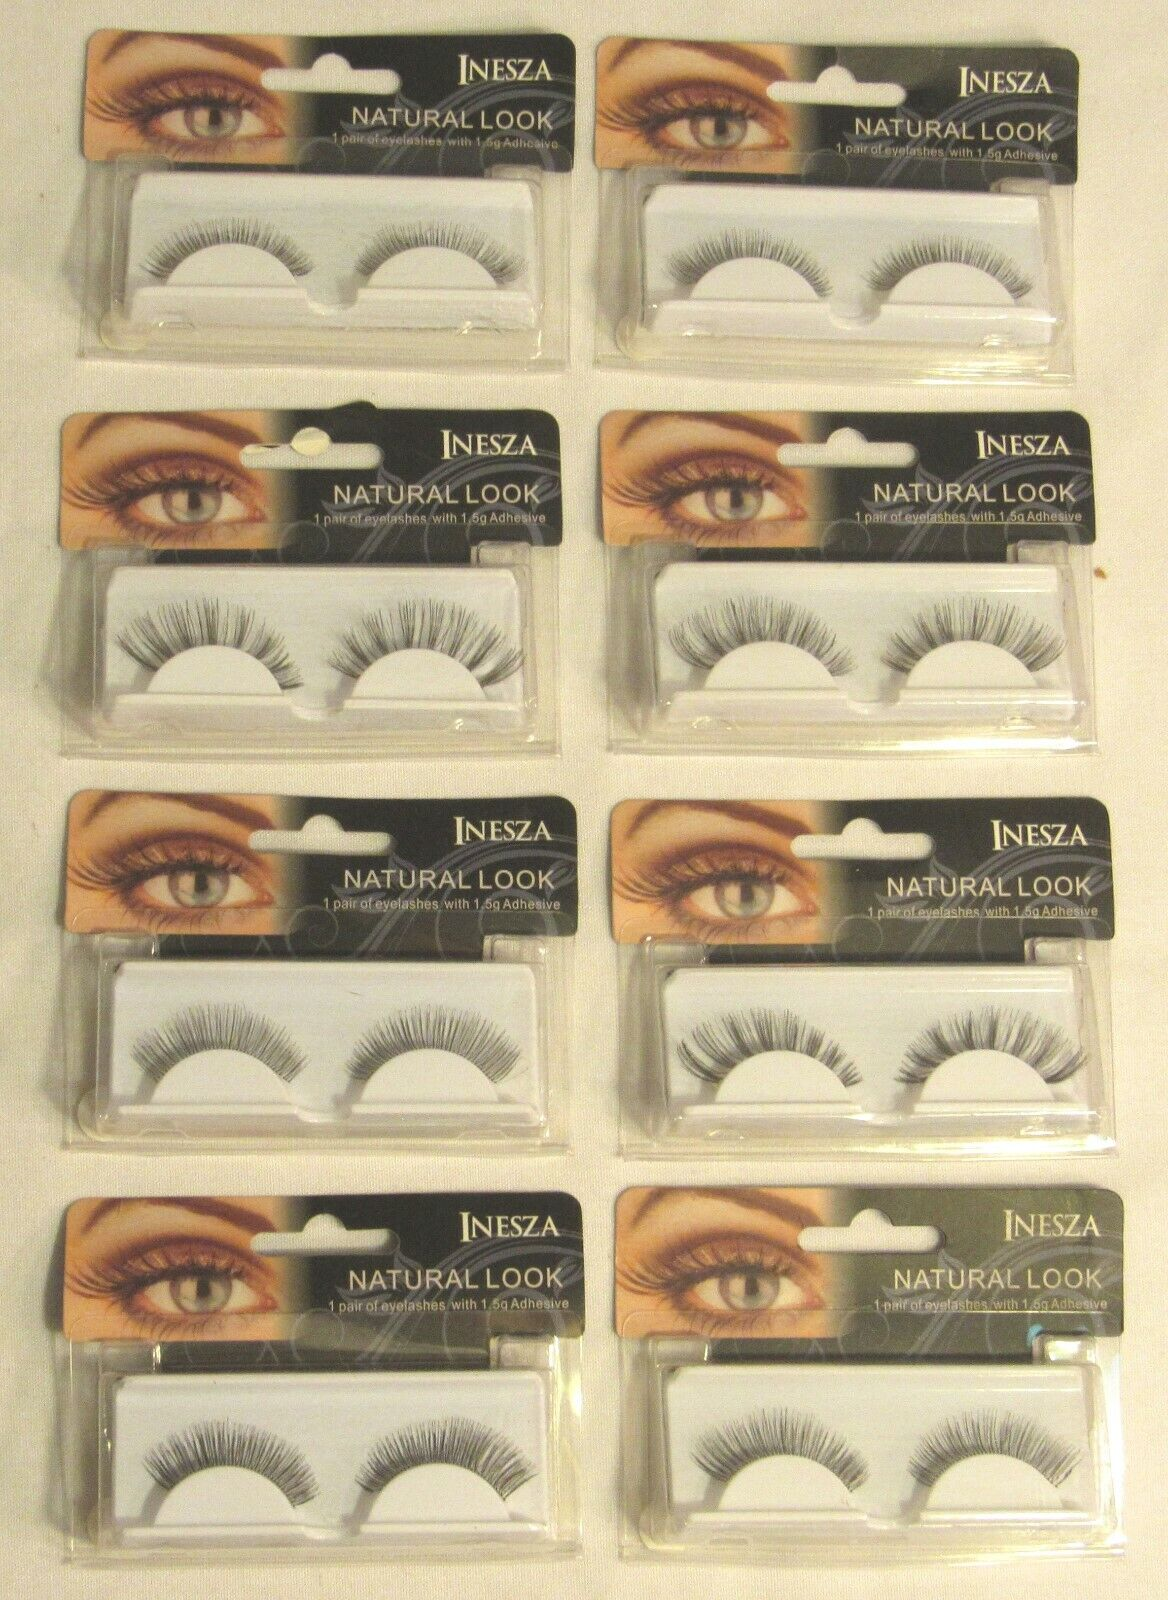 INESZA Natural Look Eyelashes with Glue  - Lot of 8